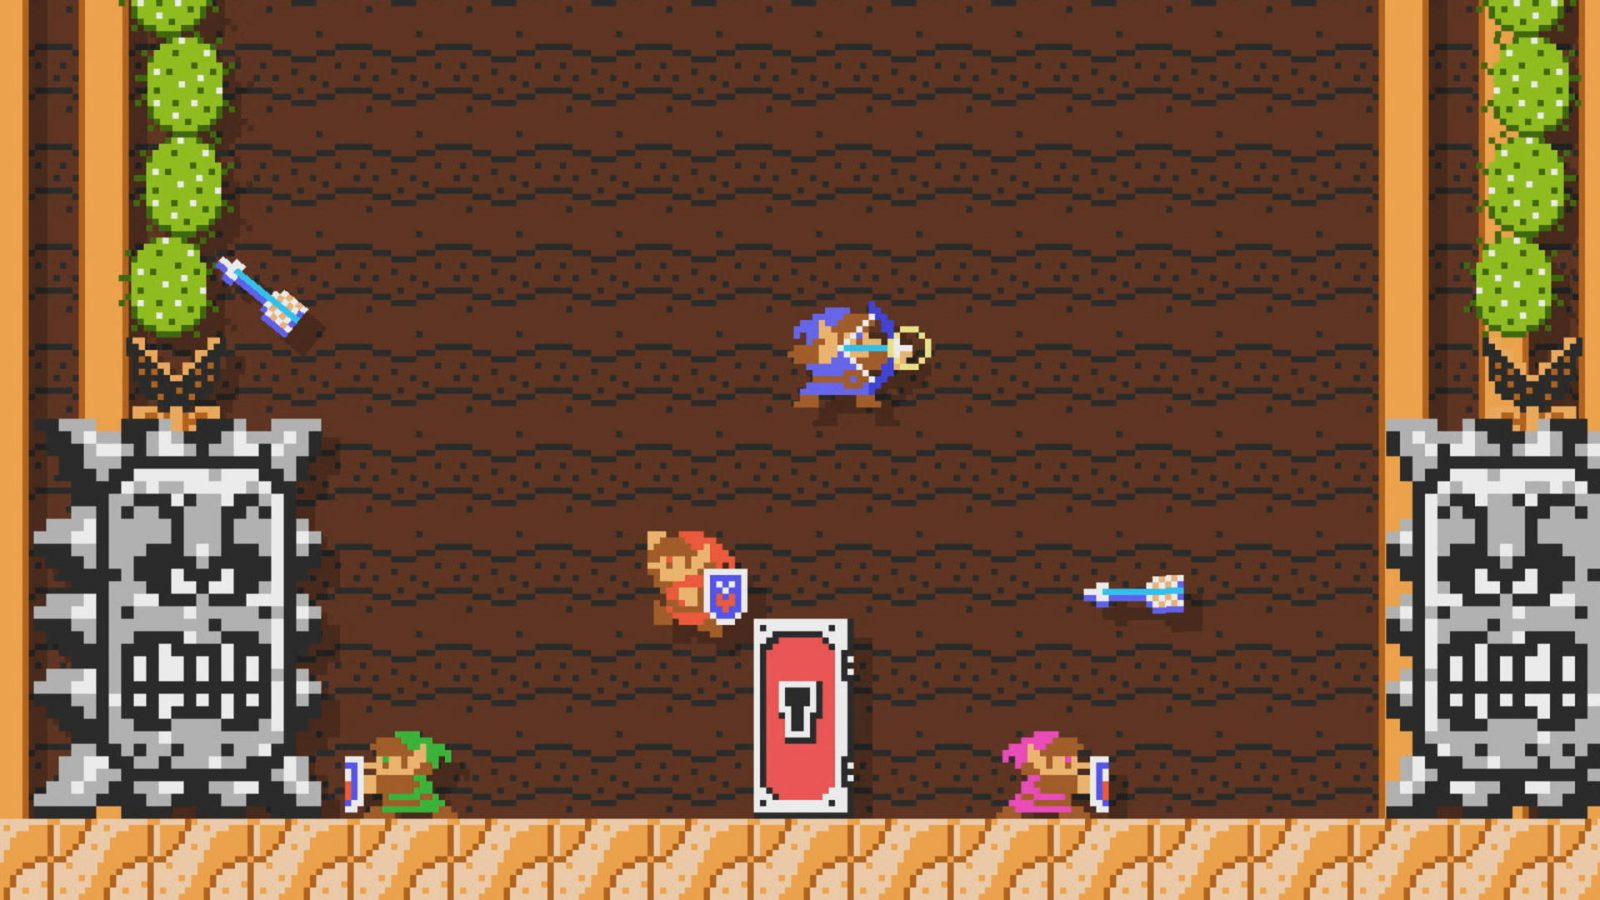 These Super Mario Maker 2 Link Power-Up Levels Show How Ingenious a Zelda Maker Could Be